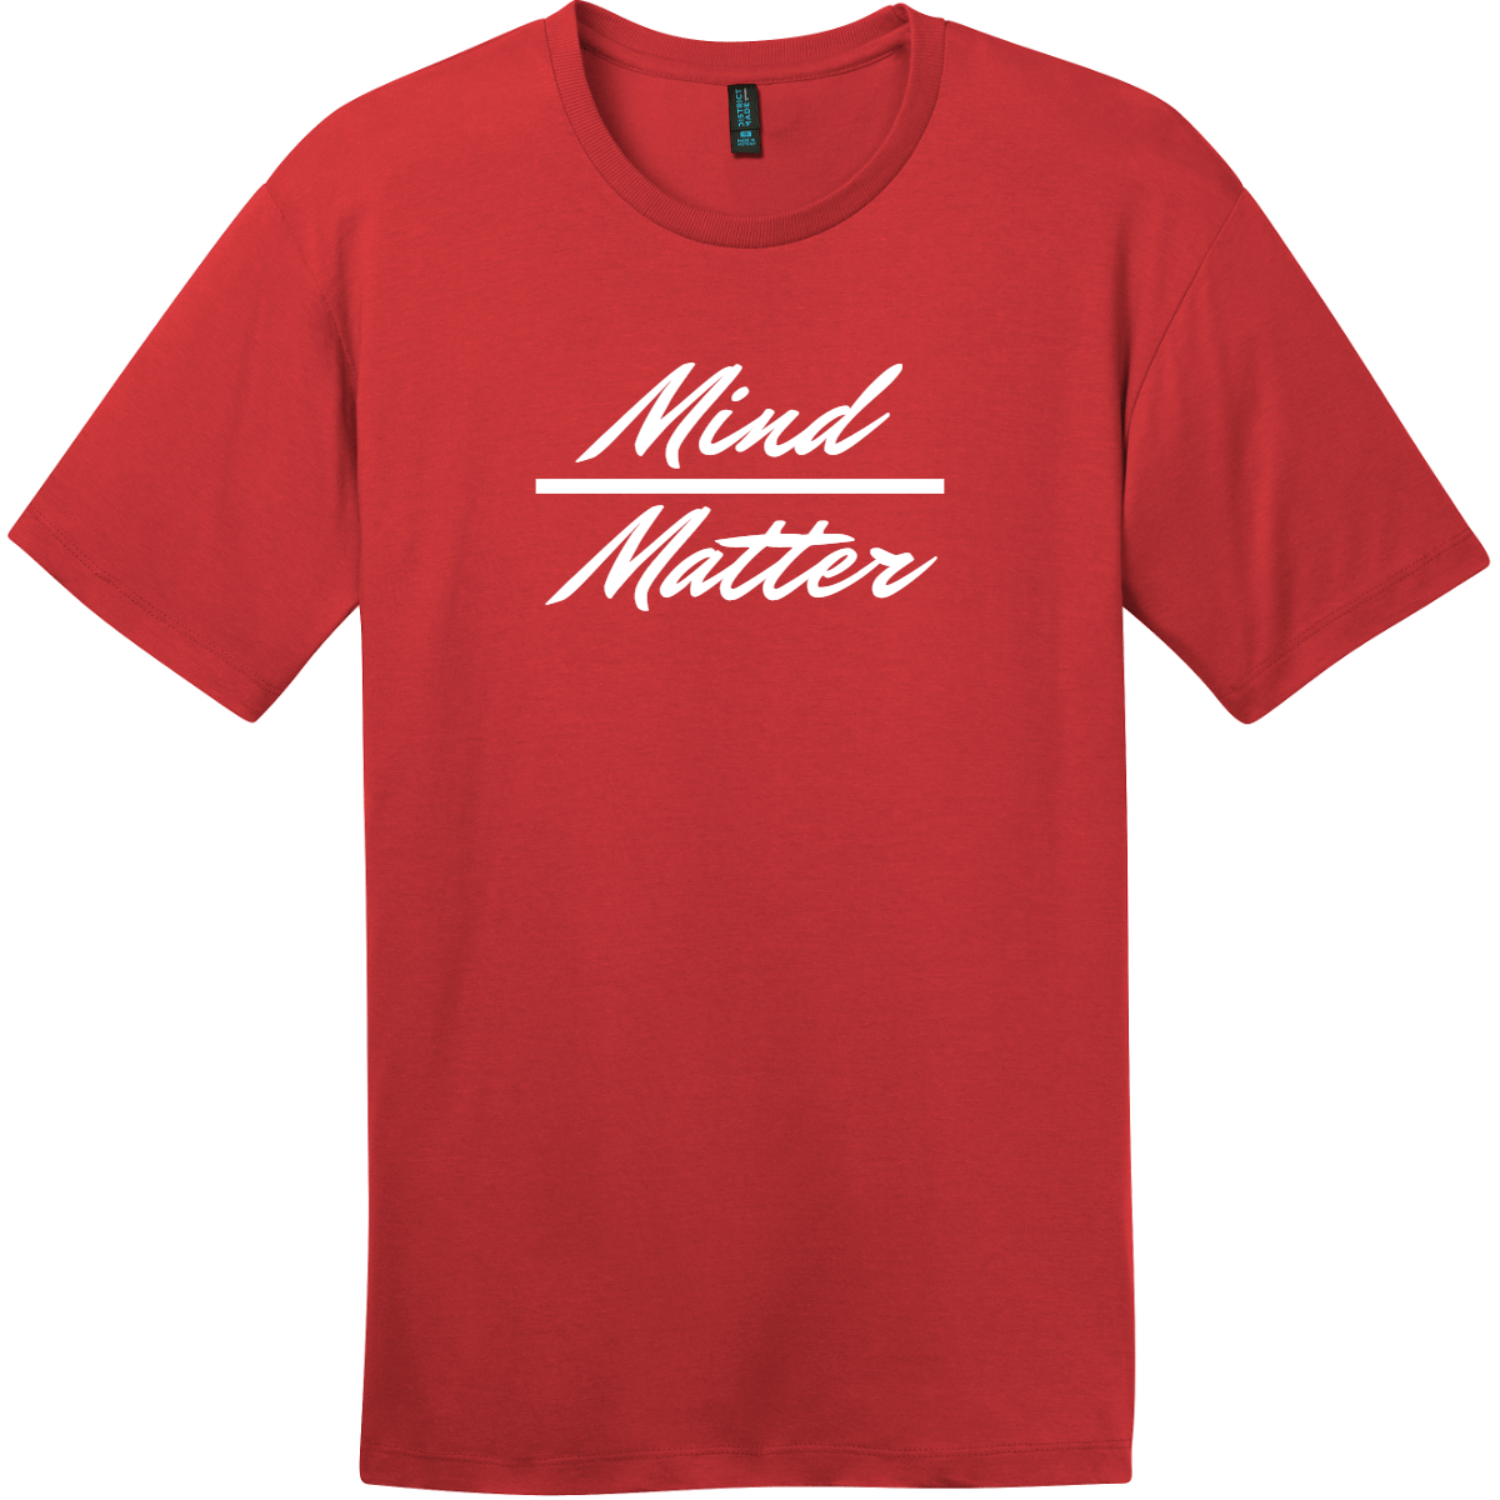 Mind Over Matter T-Shirt Classic Red District Perfect Weight Tee DT104